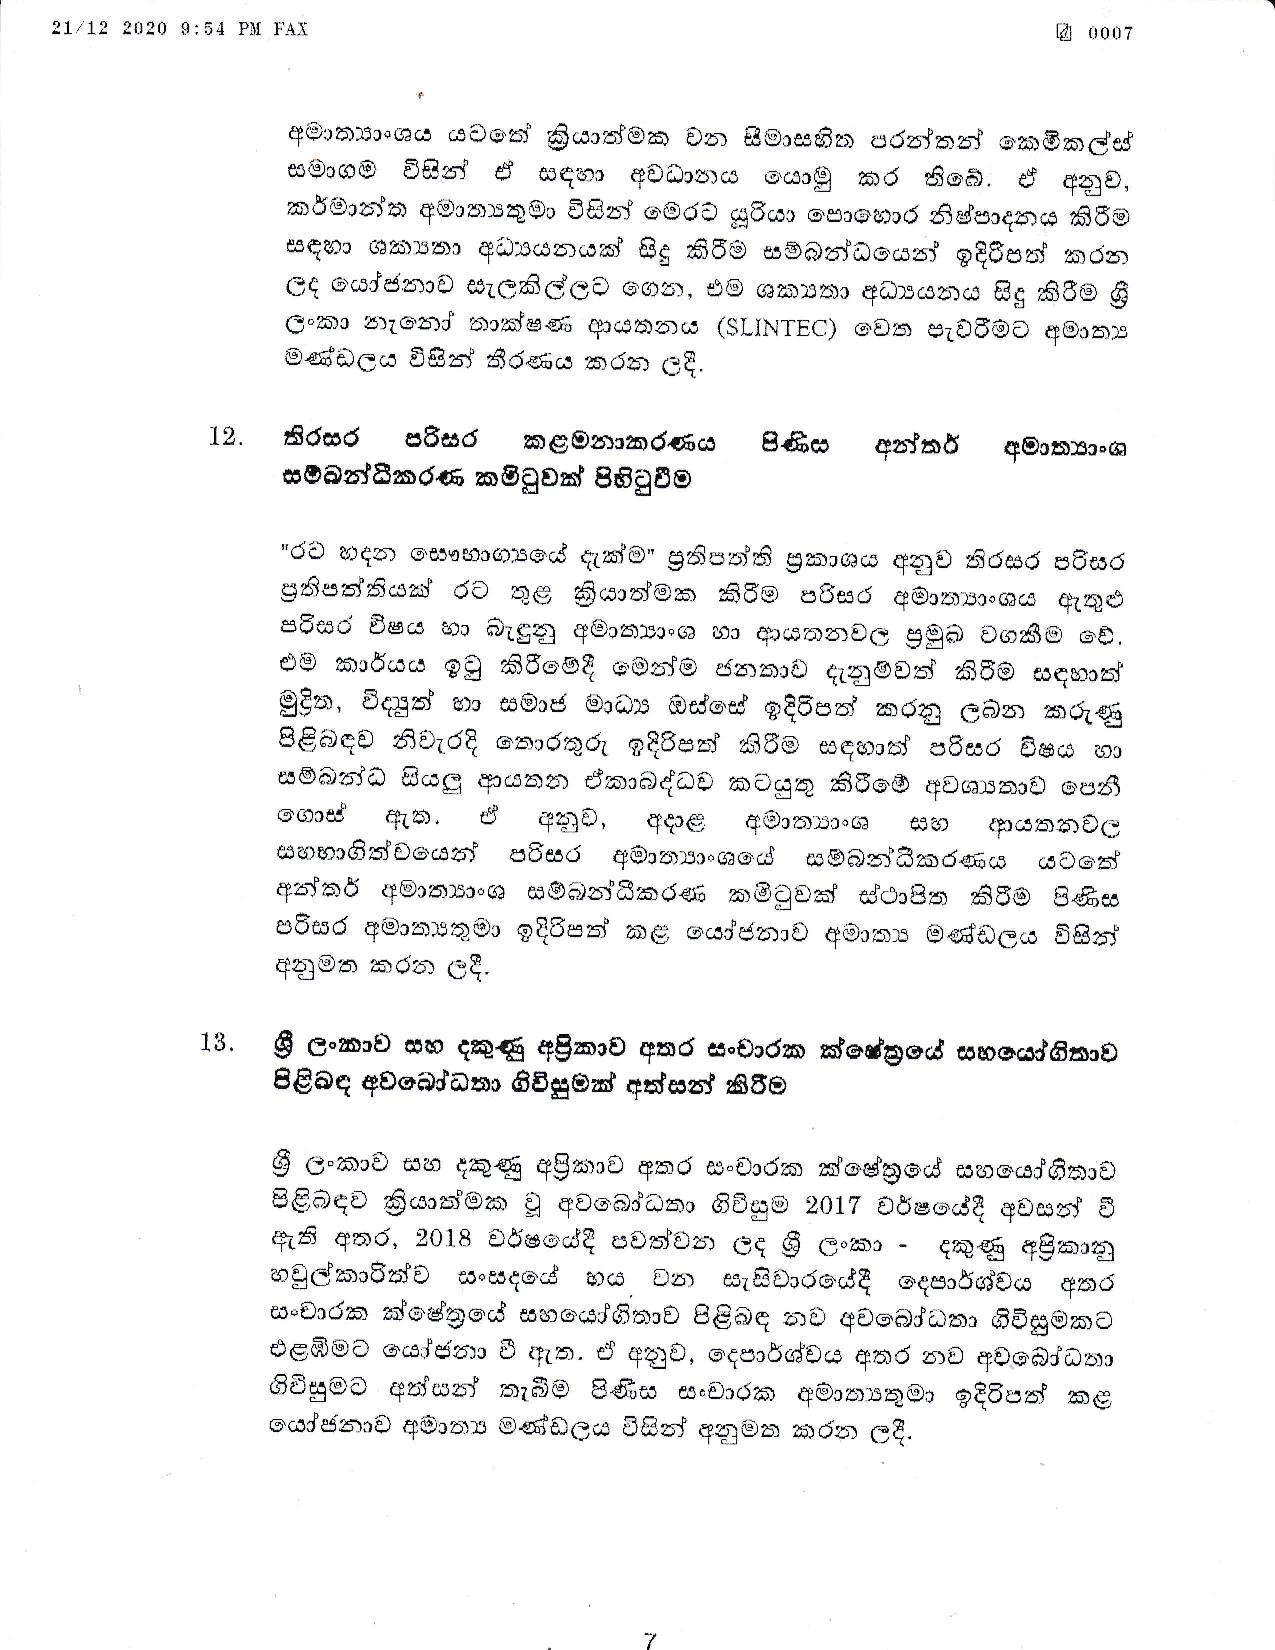 Cabinet Decision on 21.12.2020 page 007